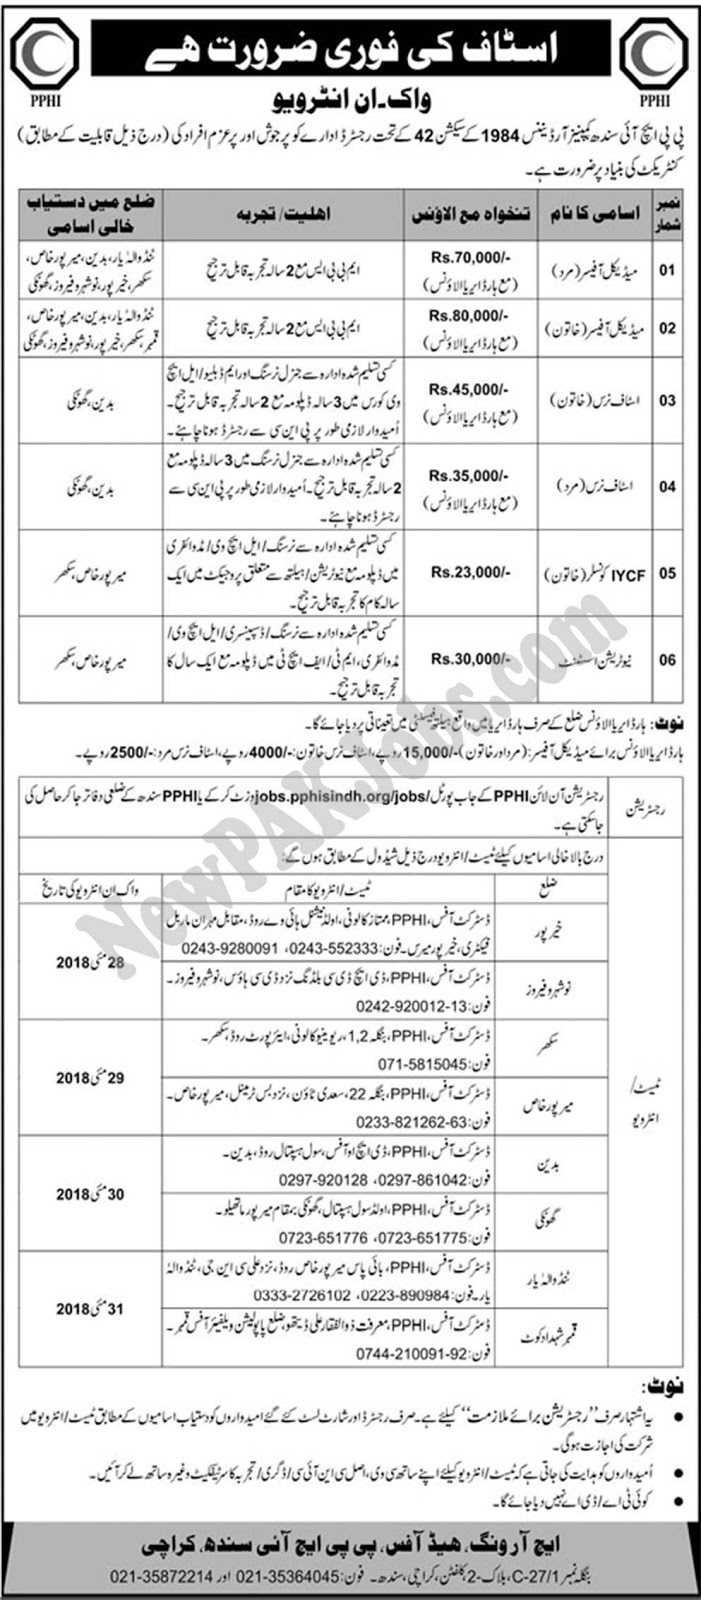 PPHI Sindh Jobs 2018  Today Peoples Primary Health Care initiative Sindh